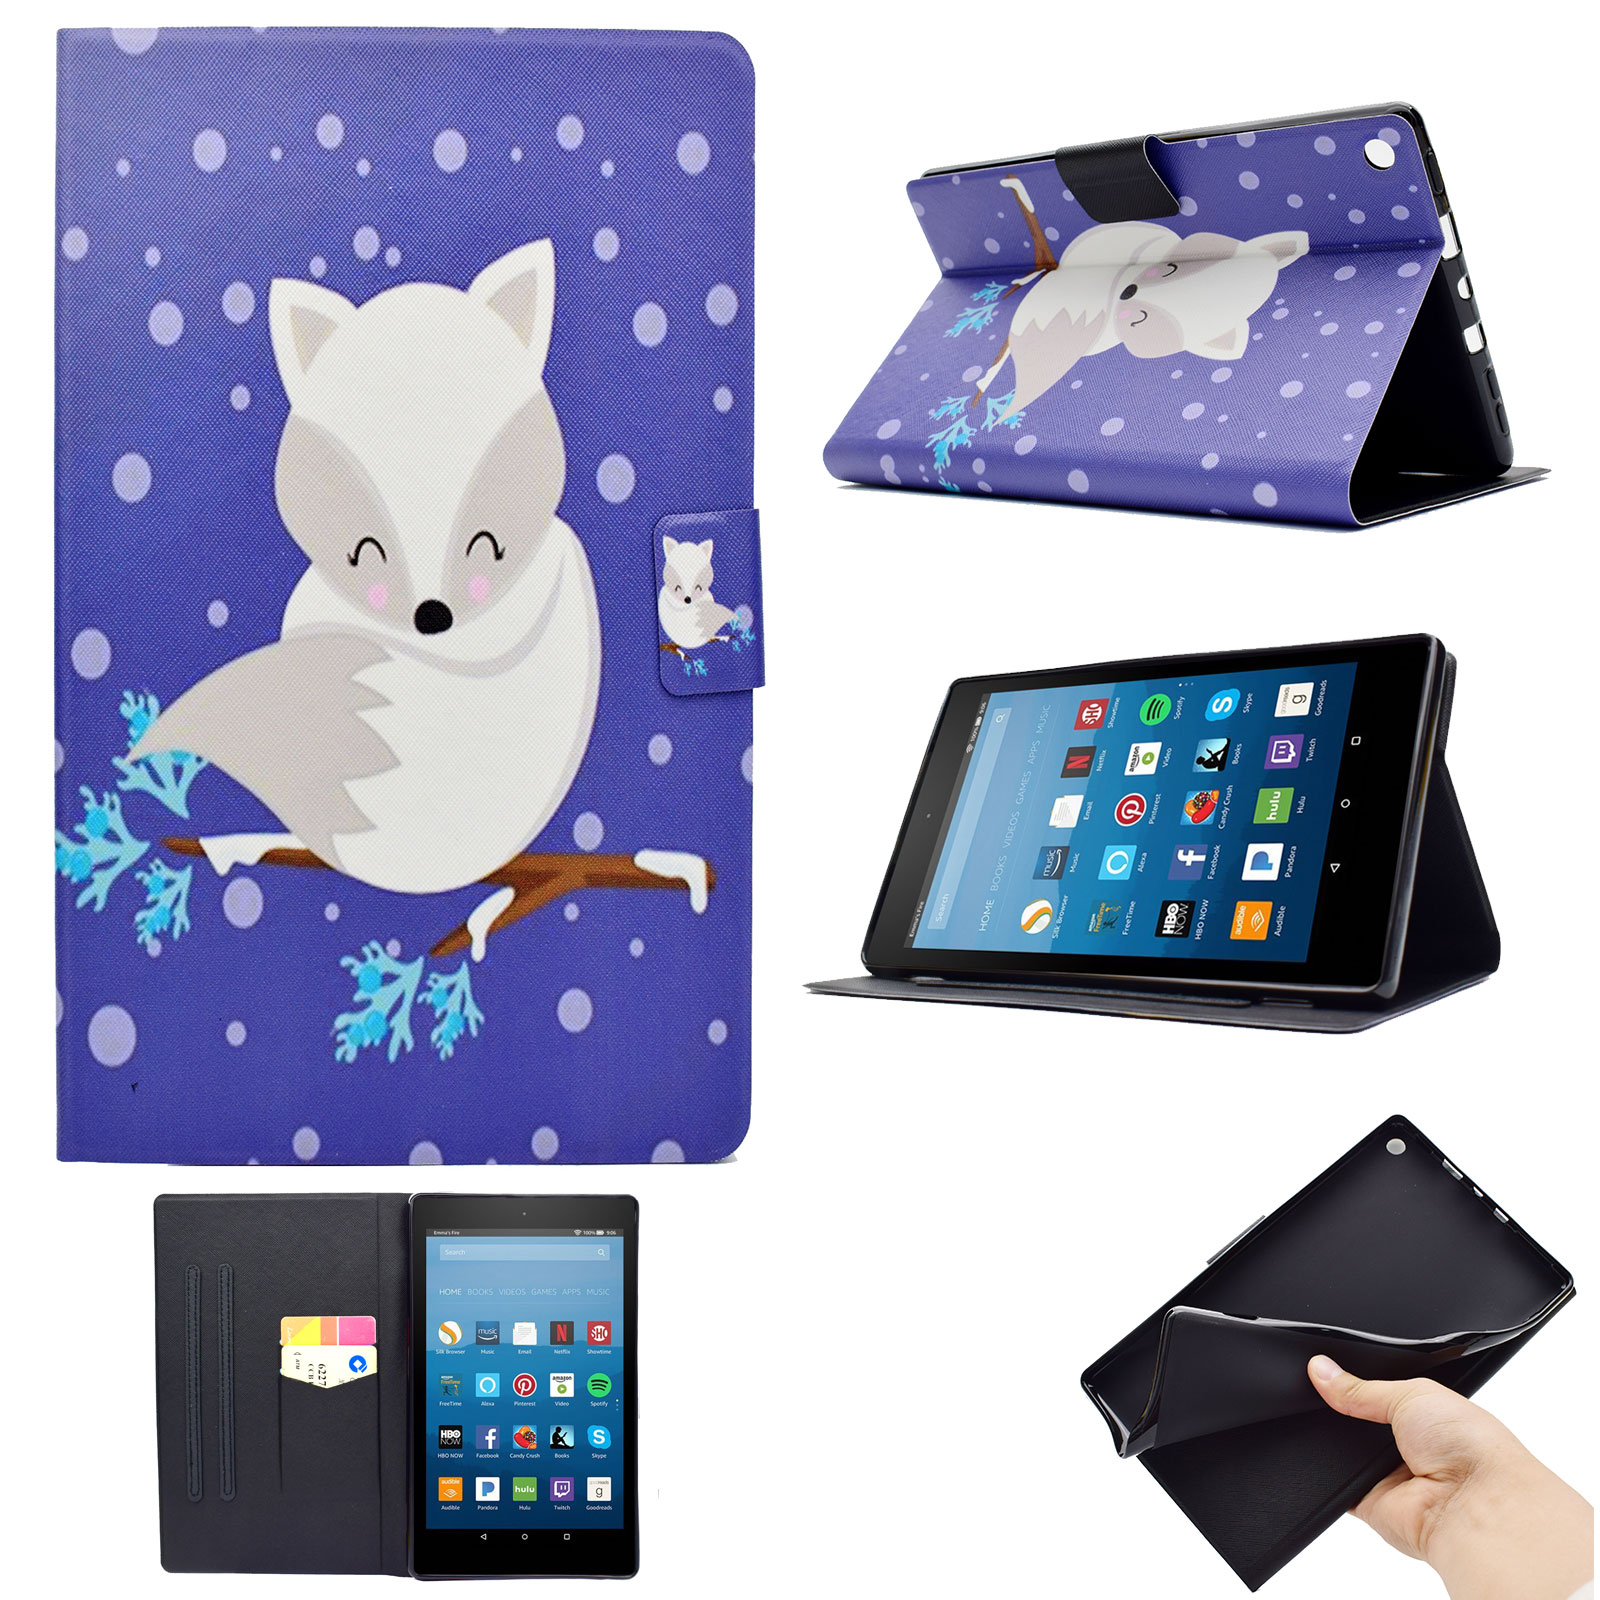 Goodest Folio Case for Amazon Fire HD 10 Tablet (2017 and 2015 Release, 7th/5th Generation), Mutiple Angle Stand Case w/Auto Wake/ Sleep & Card Slot for Fire HD 10 Tablet, White Fox